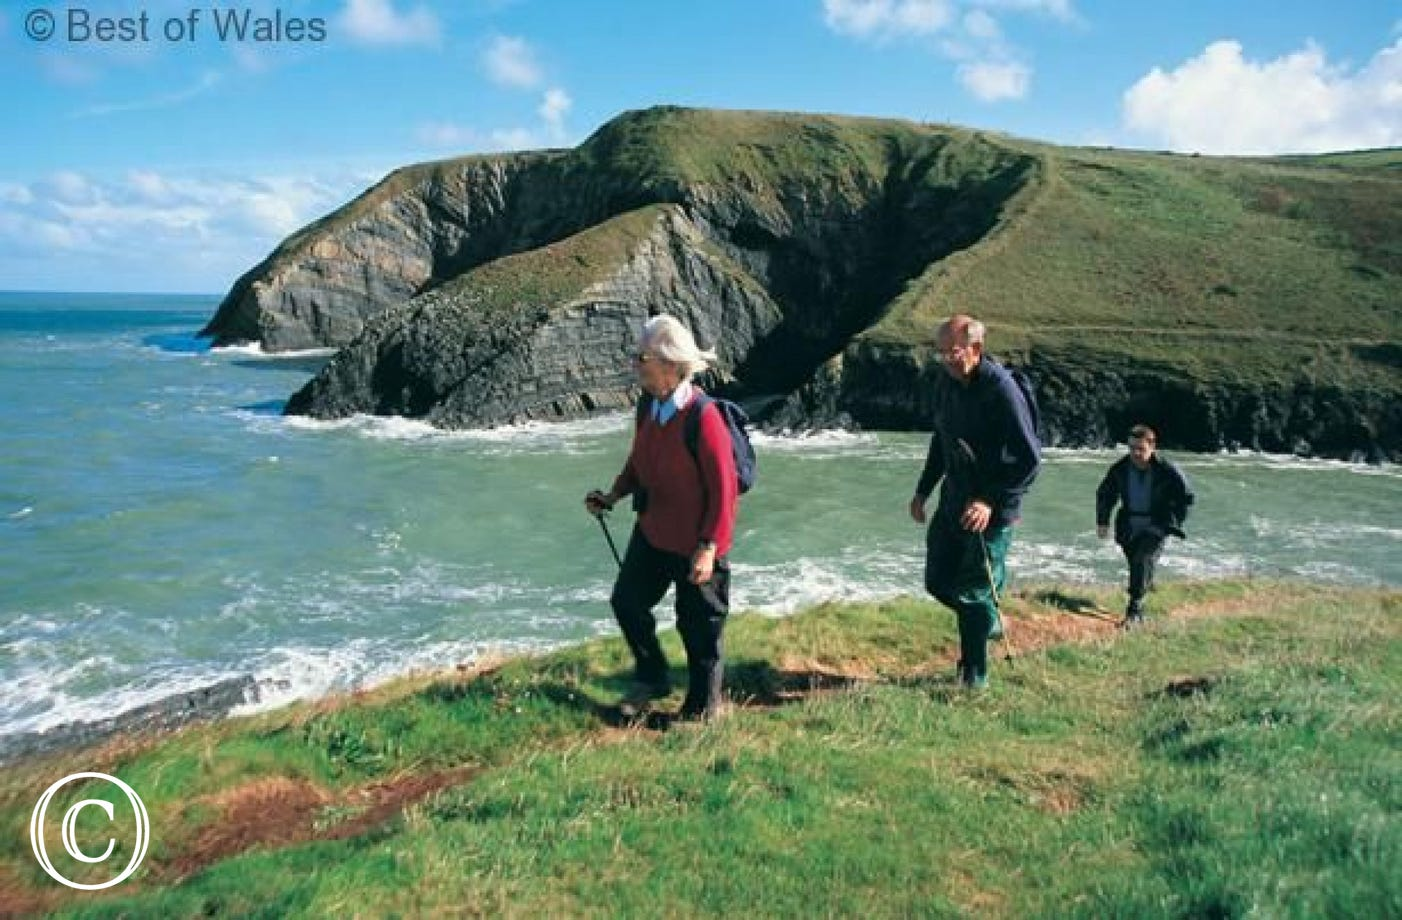 Walking the All Wales Coastal path nearby